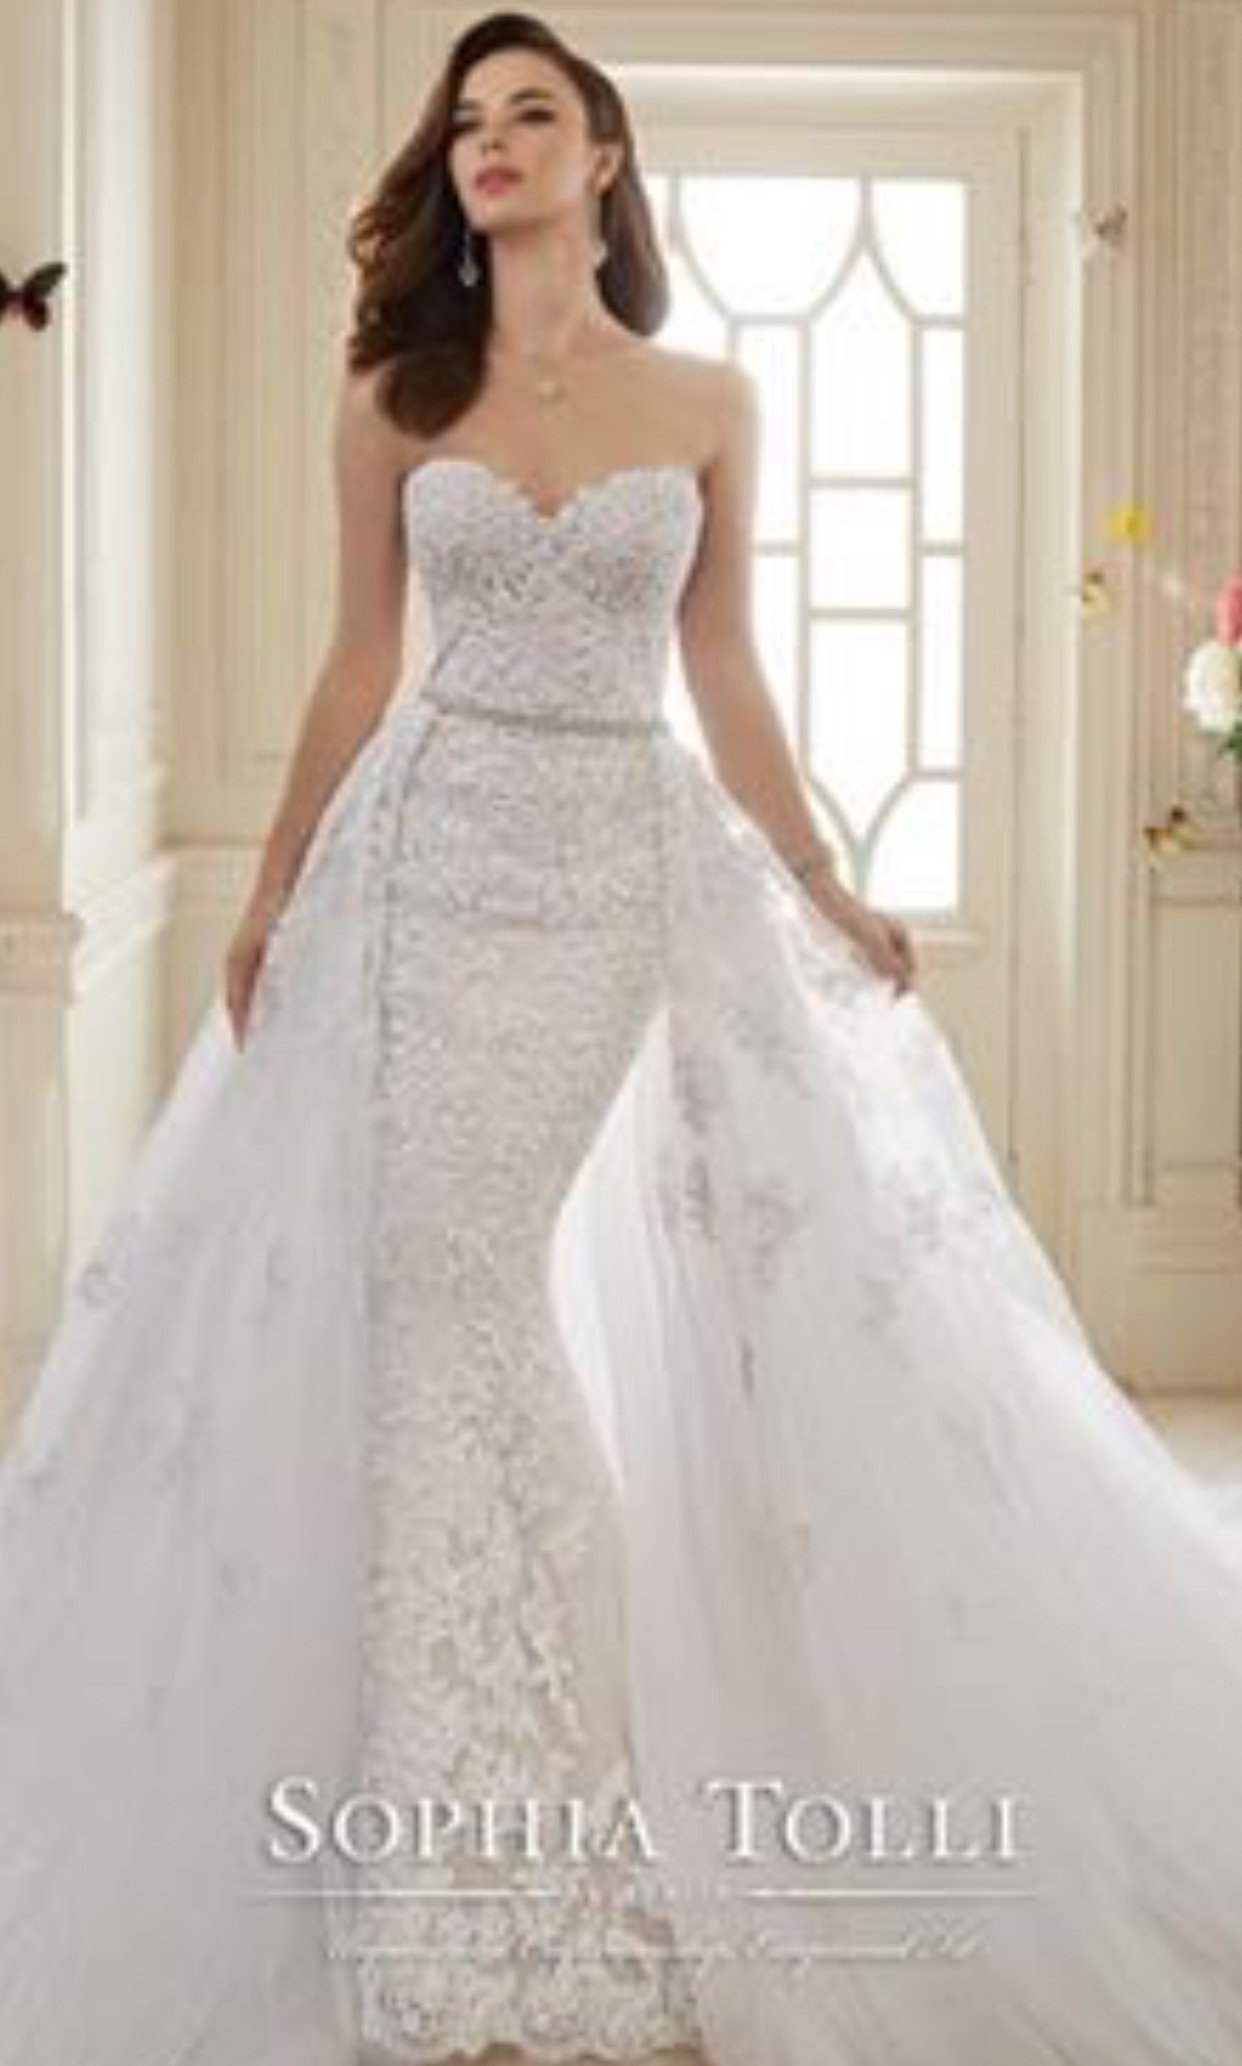 Sophia tolli custom made second hand wedding dress on sale for Second hand wedding dresses for sale